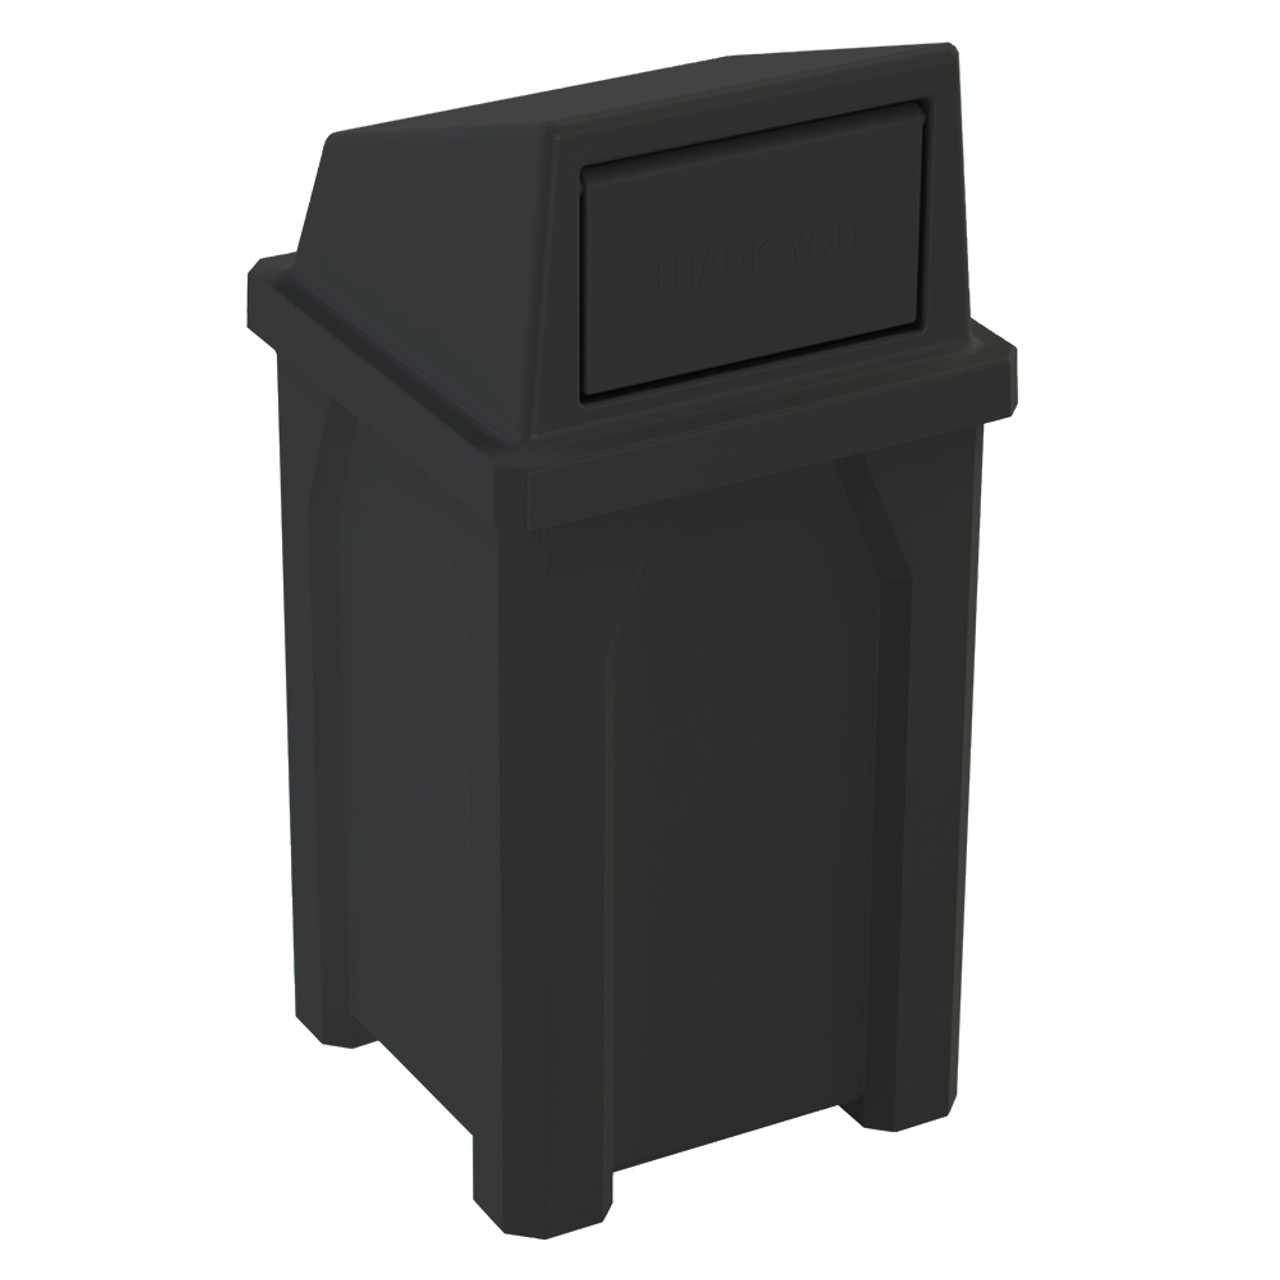 32 Gallon Kolor Can Indoor Outdoor Trash Can S7801A BLACK